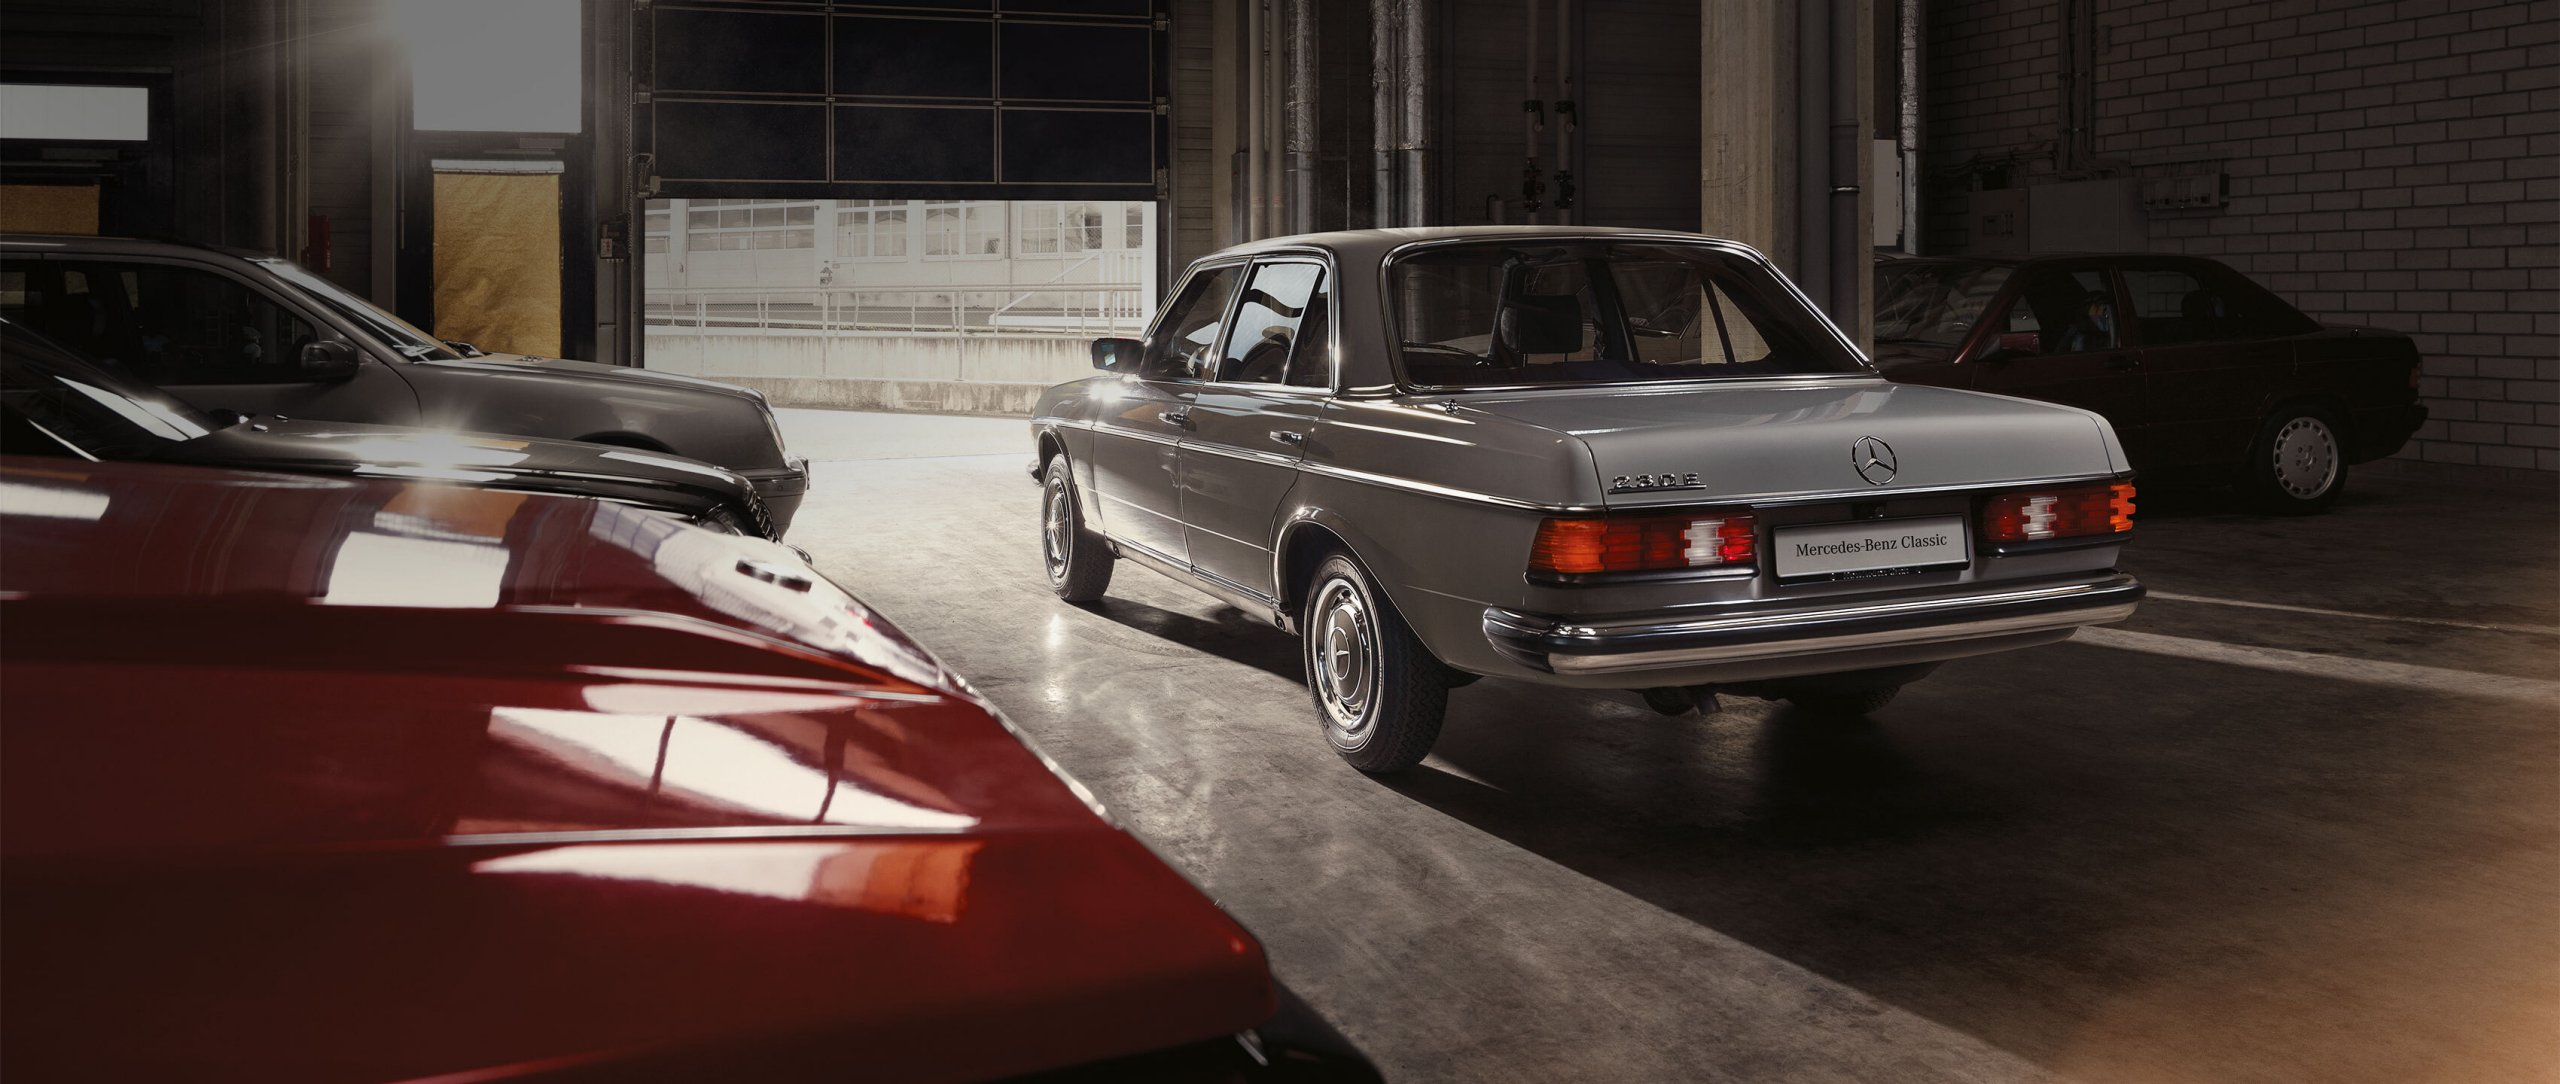 There are plenty of dream cars in the long brand tradition of Mercedes-Benz. Which is yours?